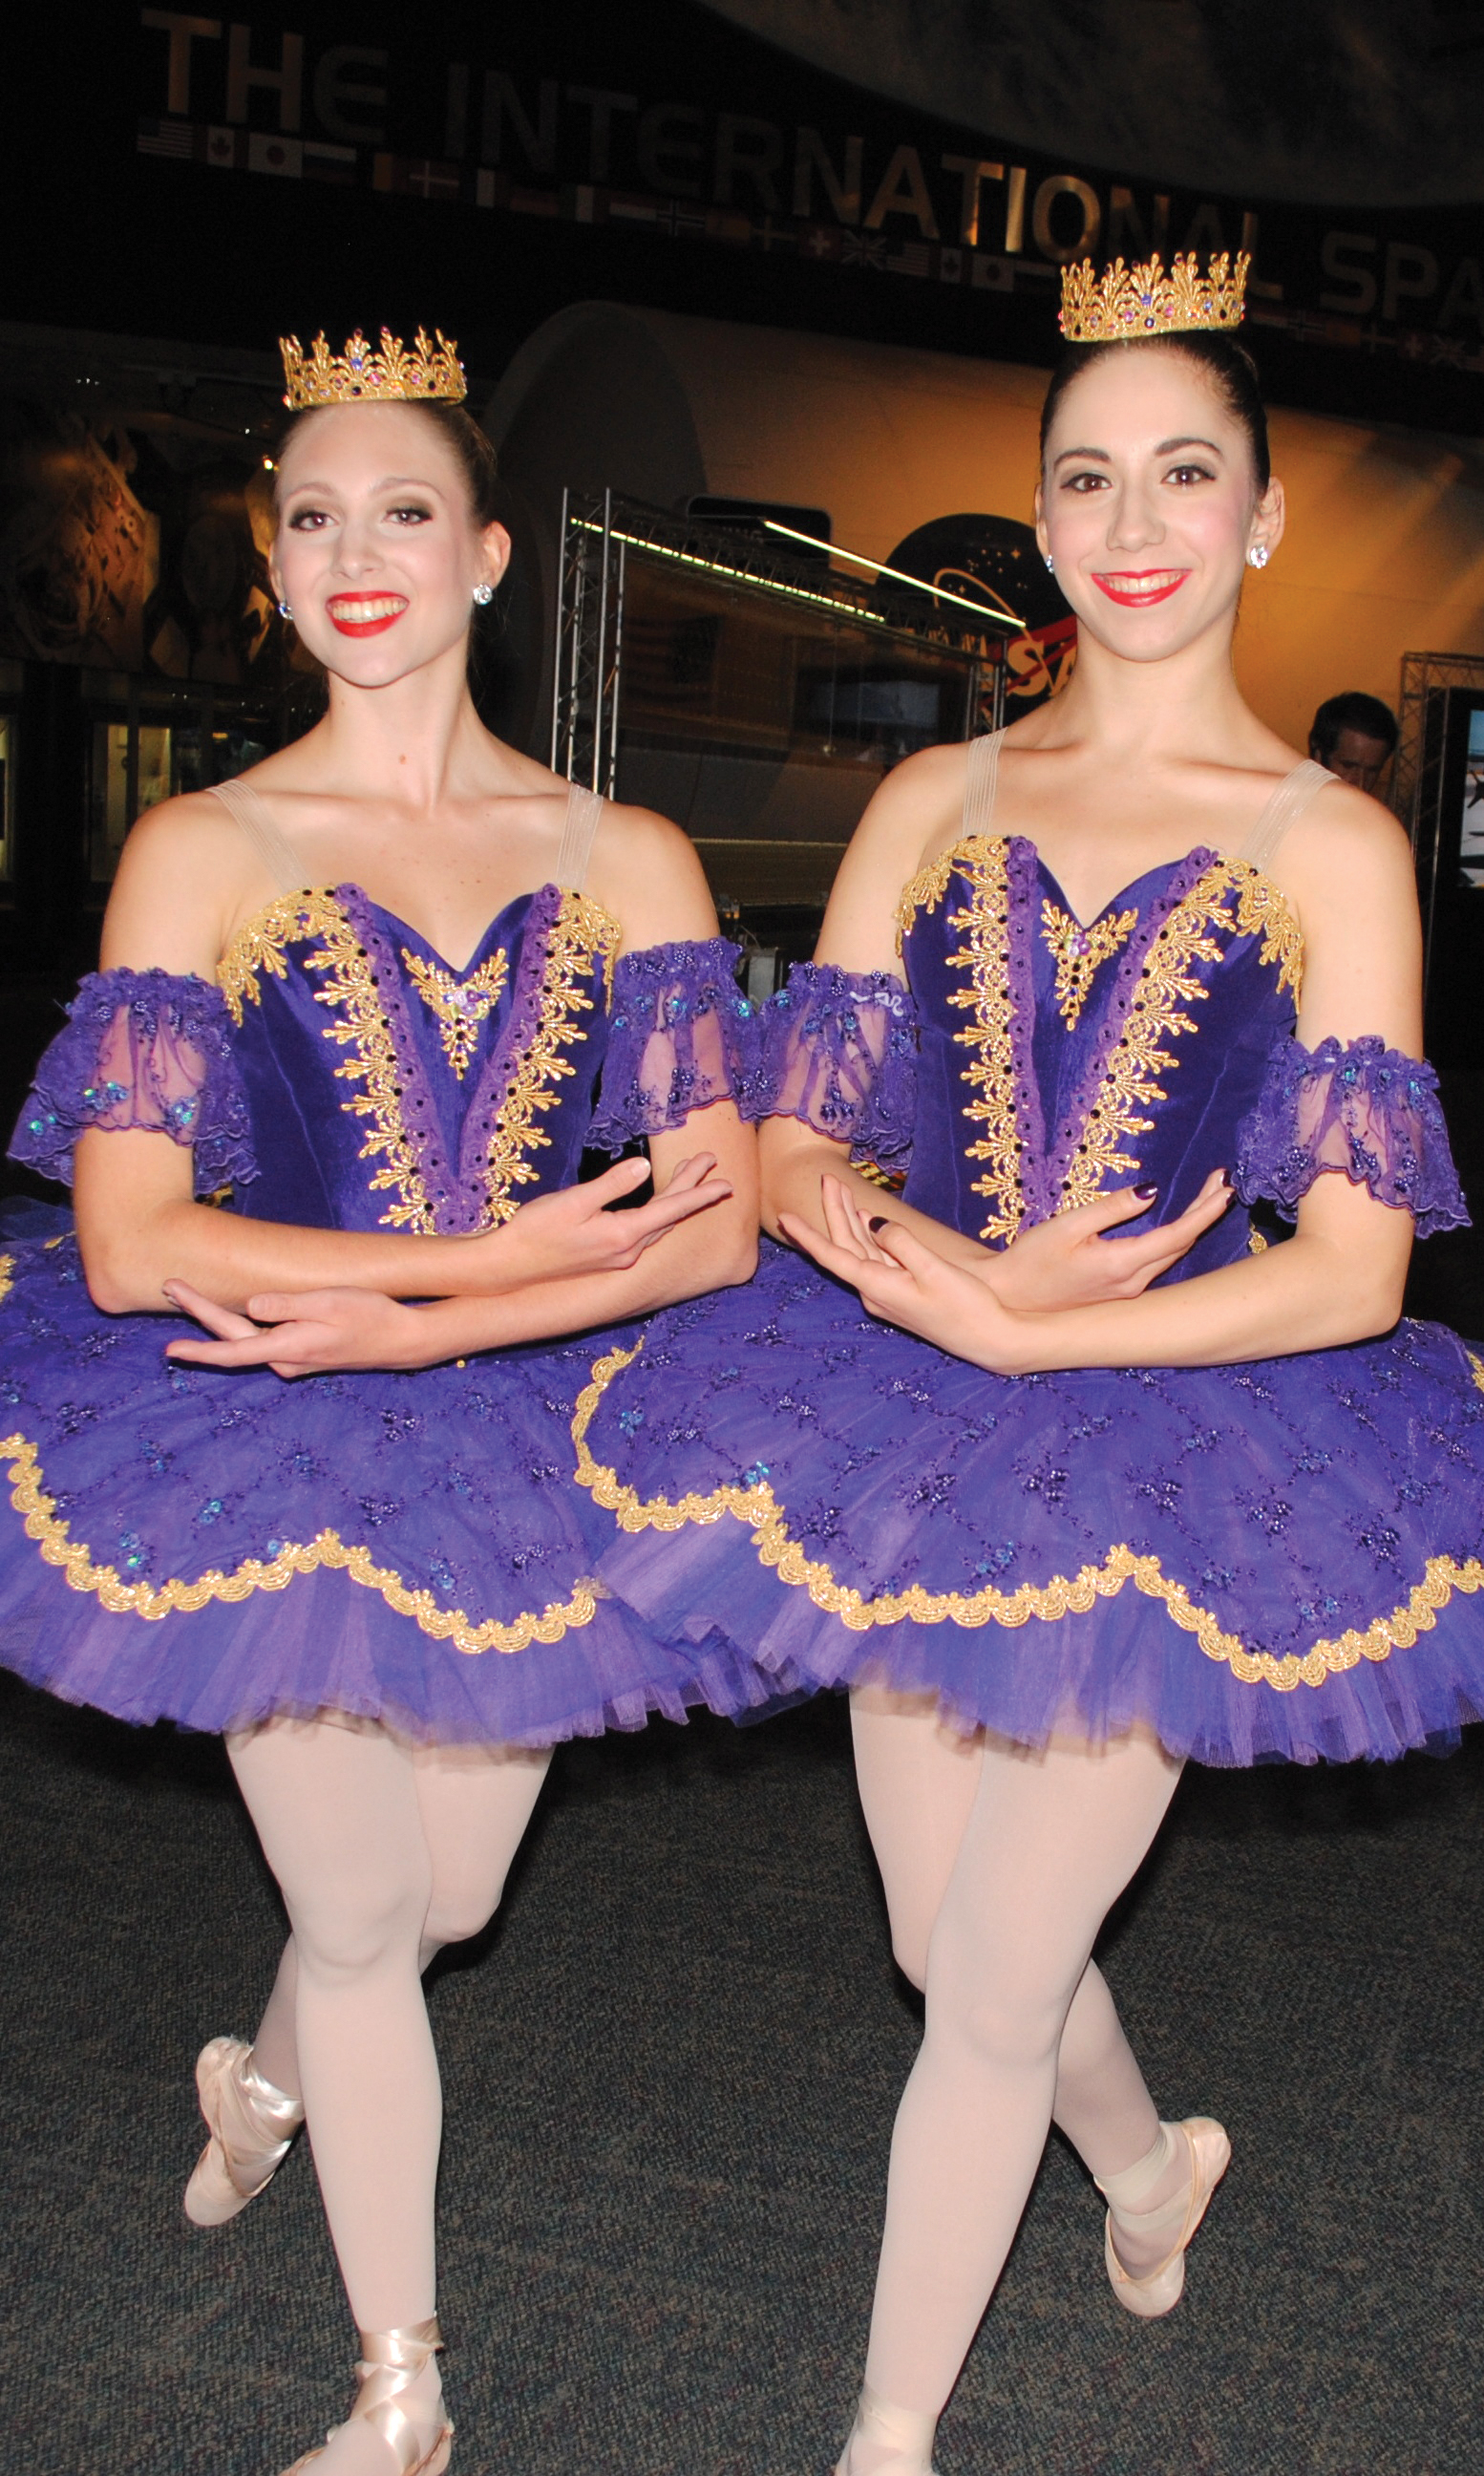 Ballerinas Brooke Carothers, left, and Millie Becker greet the arriving crowd at Space Center Houston for the Bay Area Houston Ballet & Theatre season kickoff.